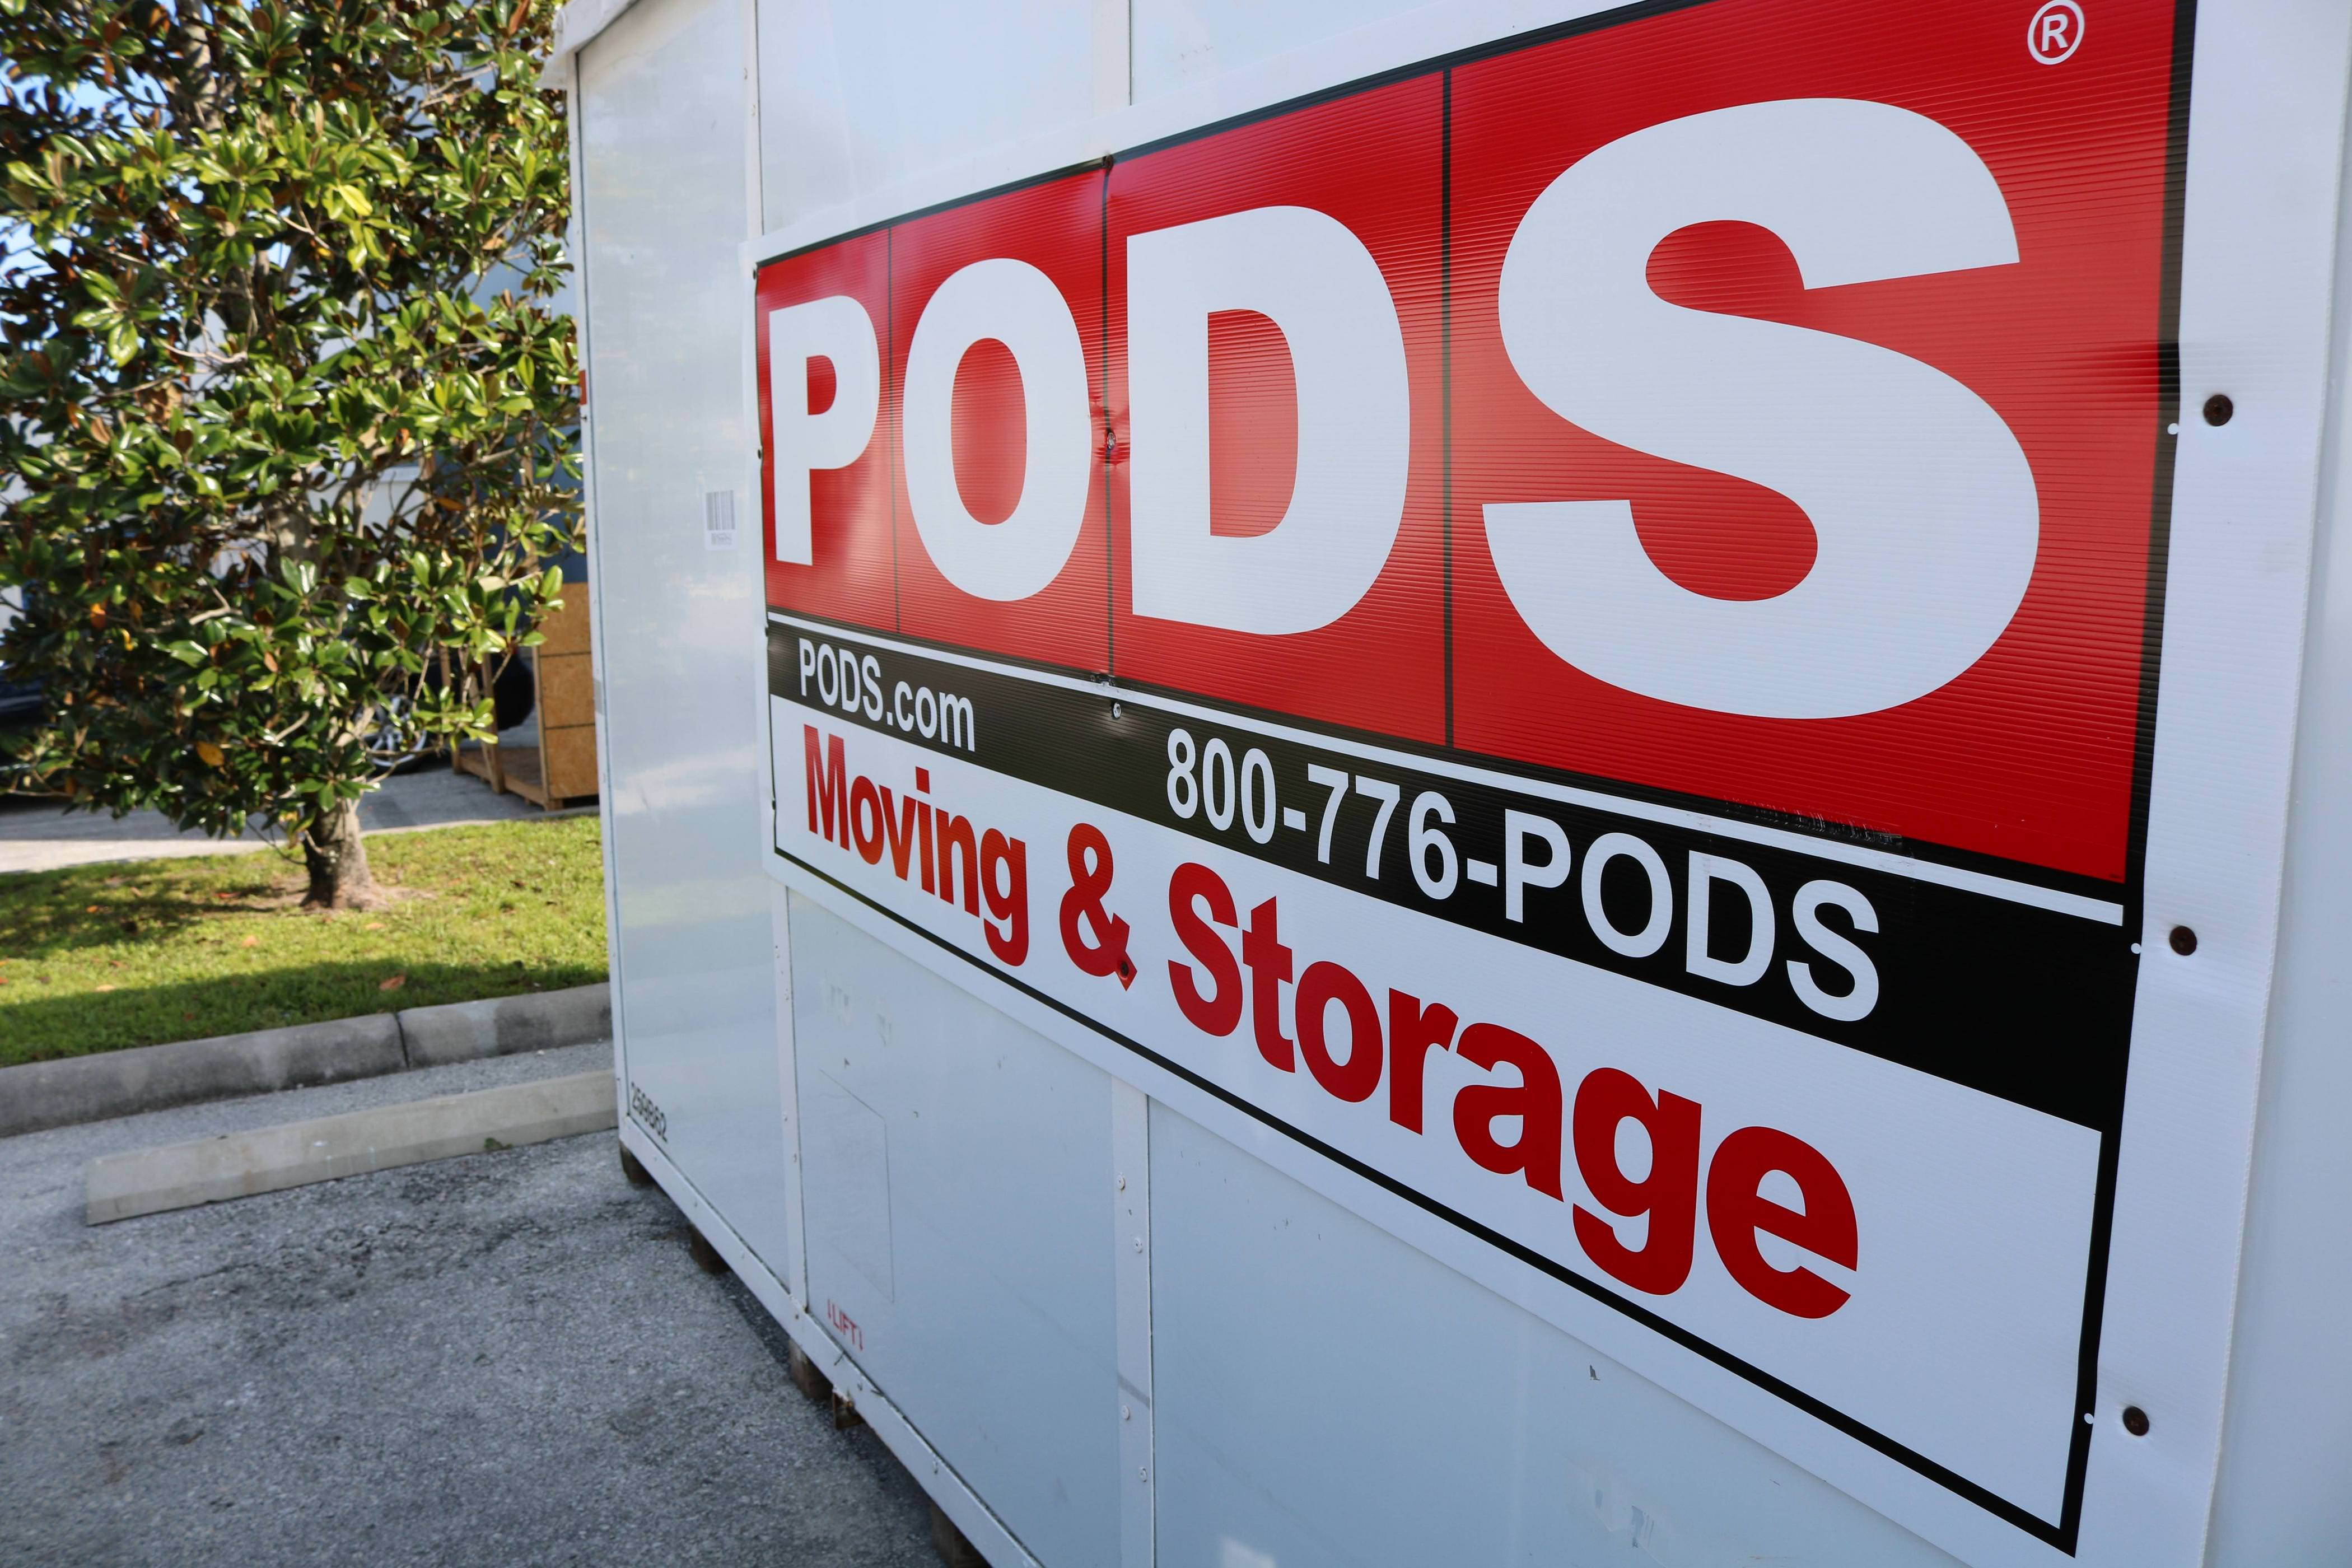 PODS - Conway, SC